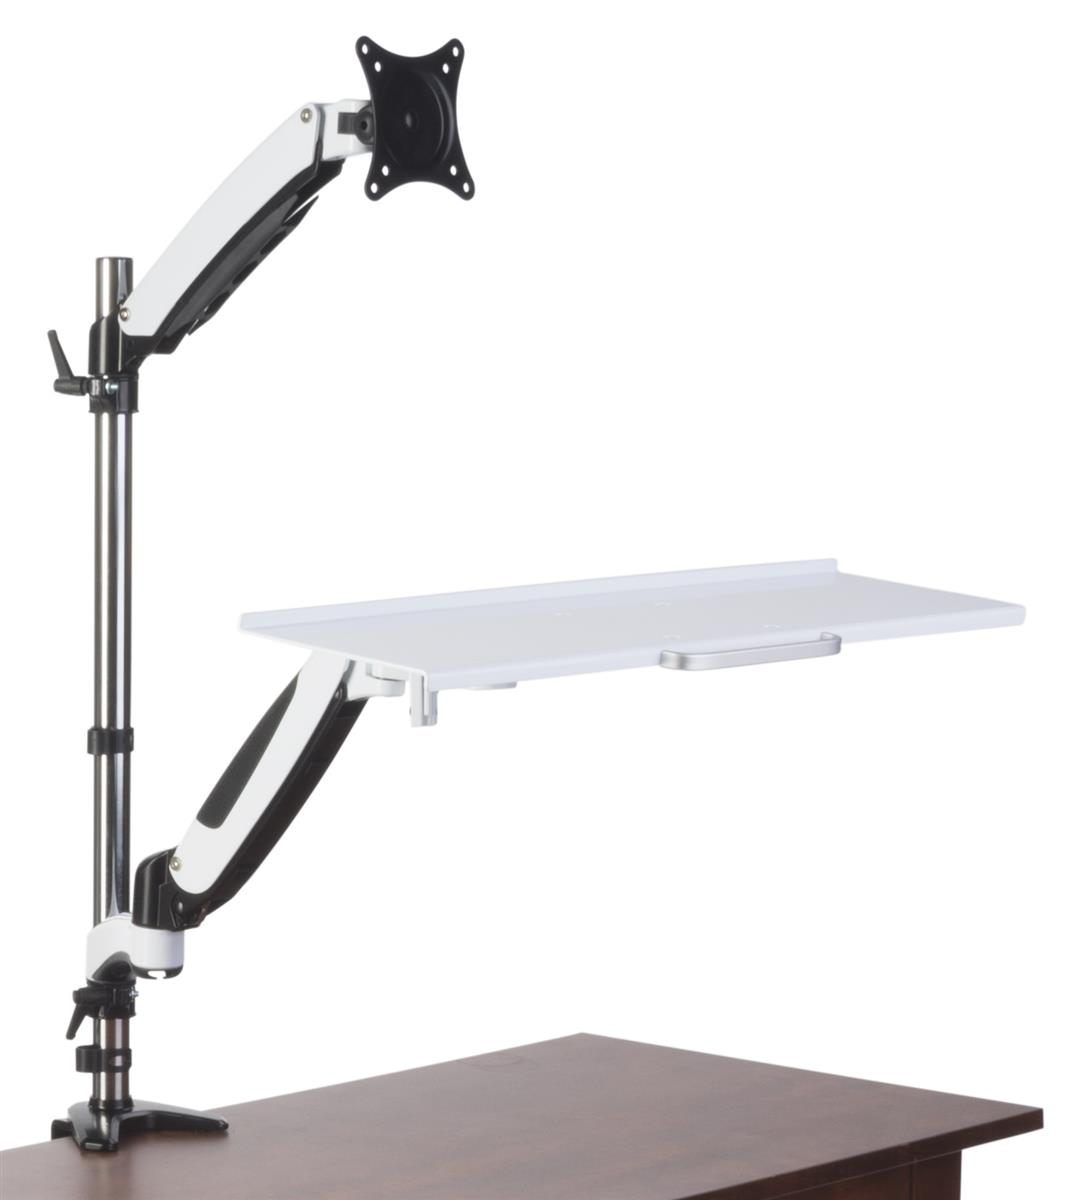 chair mount keyboard tray canada lounge chairs pool monitor desk stand tilting swiveling and rotating